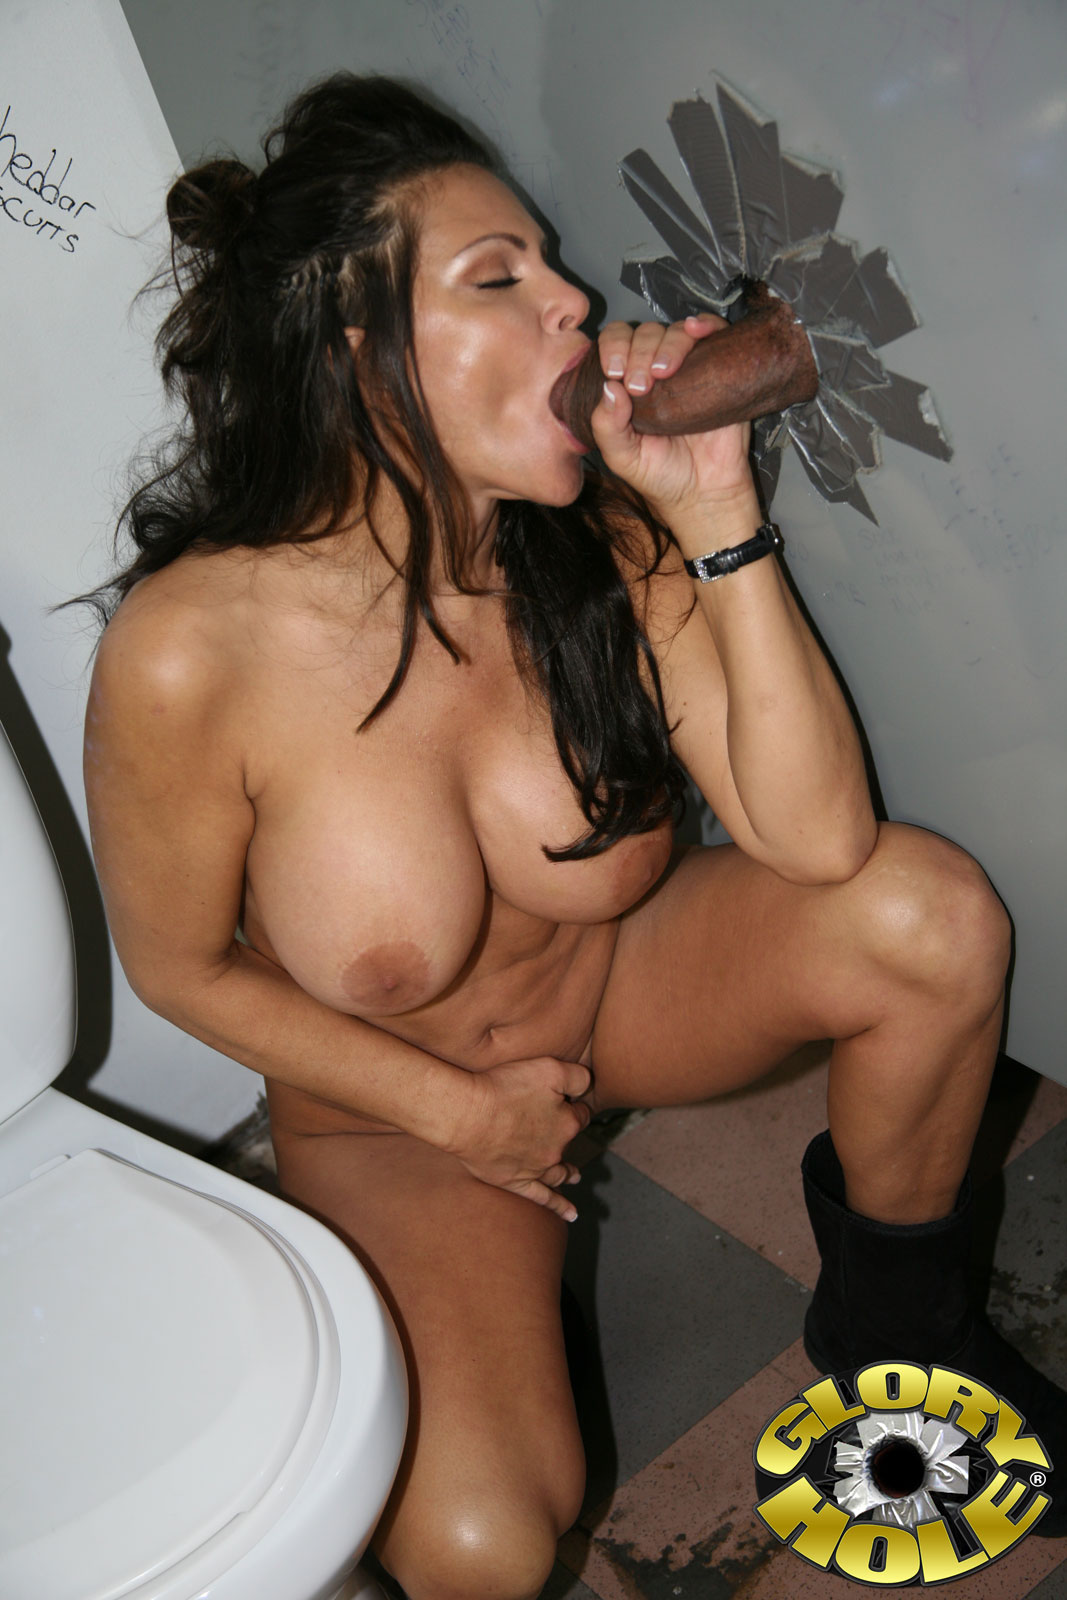 galleries GloryHole content teri weigel pic 23